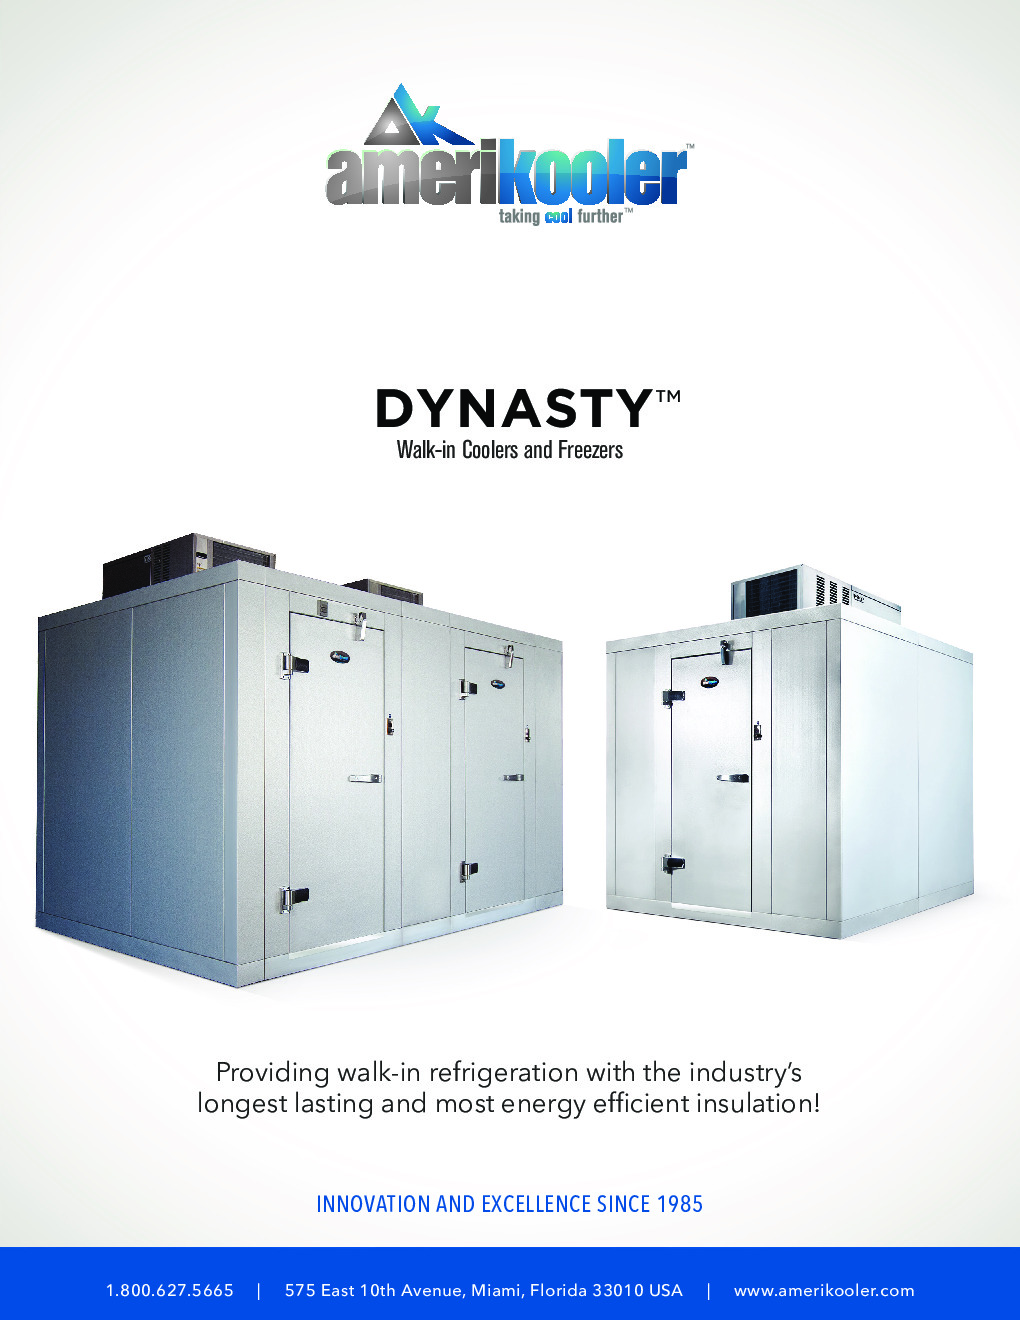 AmeriKooler DW091777F-8/9-SC 9' X 17' Walk-In Cooler, 9' L Cooler with Floor and 8' L Freezer, Self Contained